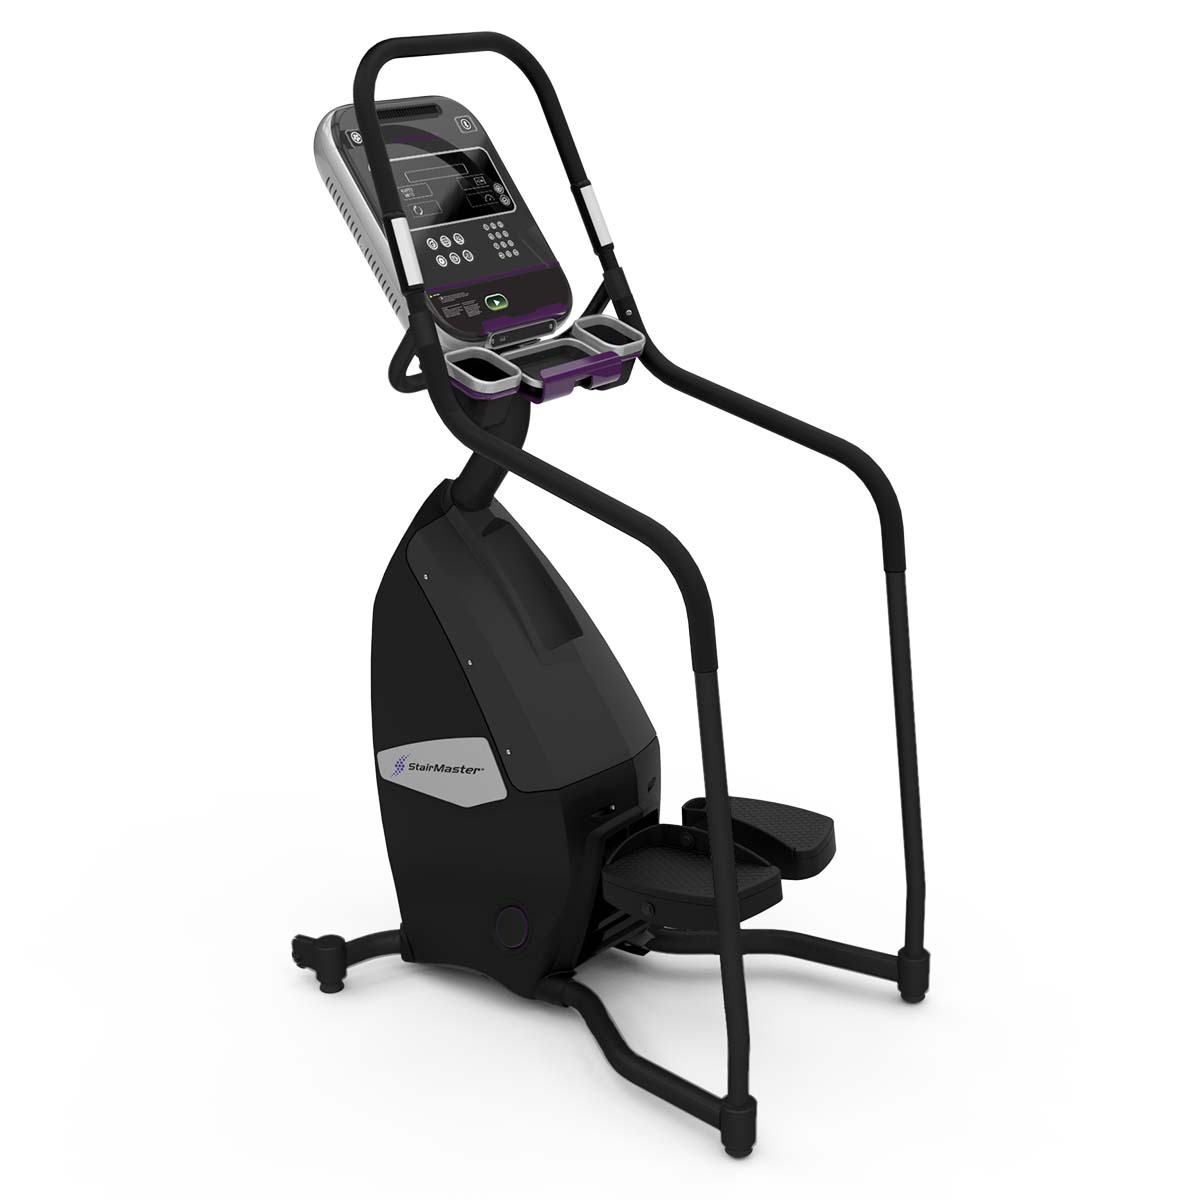 Richmond StairMaster Free Climber - Stepper - Lifestyle Equipment